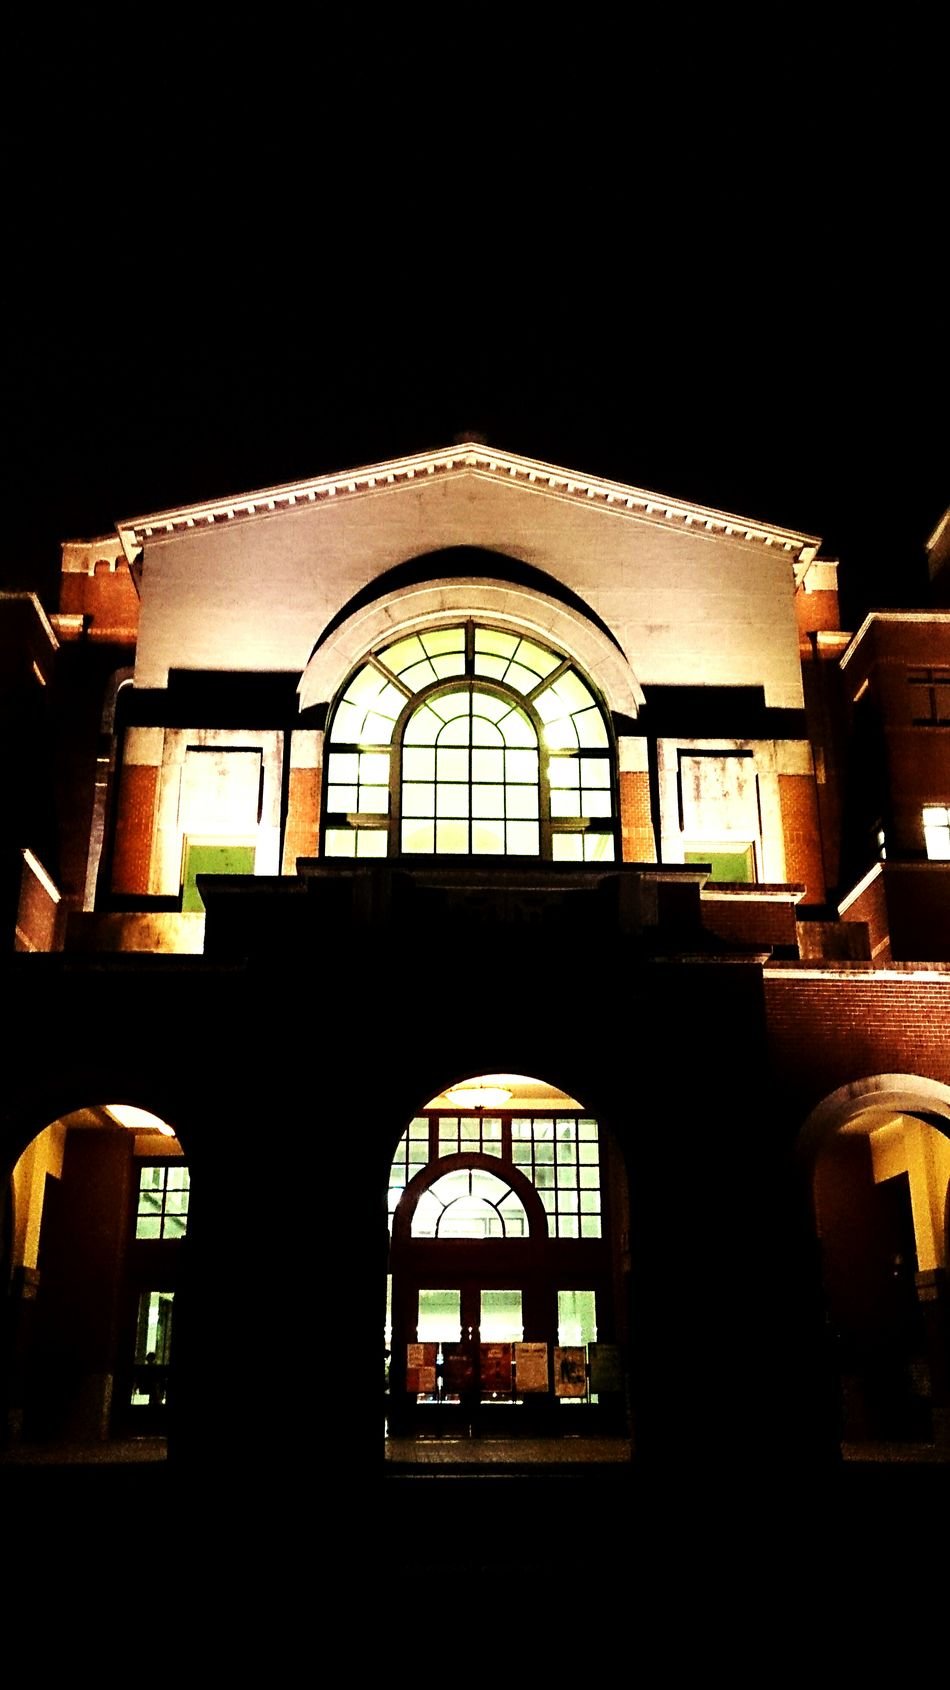 Night library Library Night Lights 國立臺灣大學 National Taiwan University  Learning Weekend Taking Photos EyeEm Best Shots Tourists Building